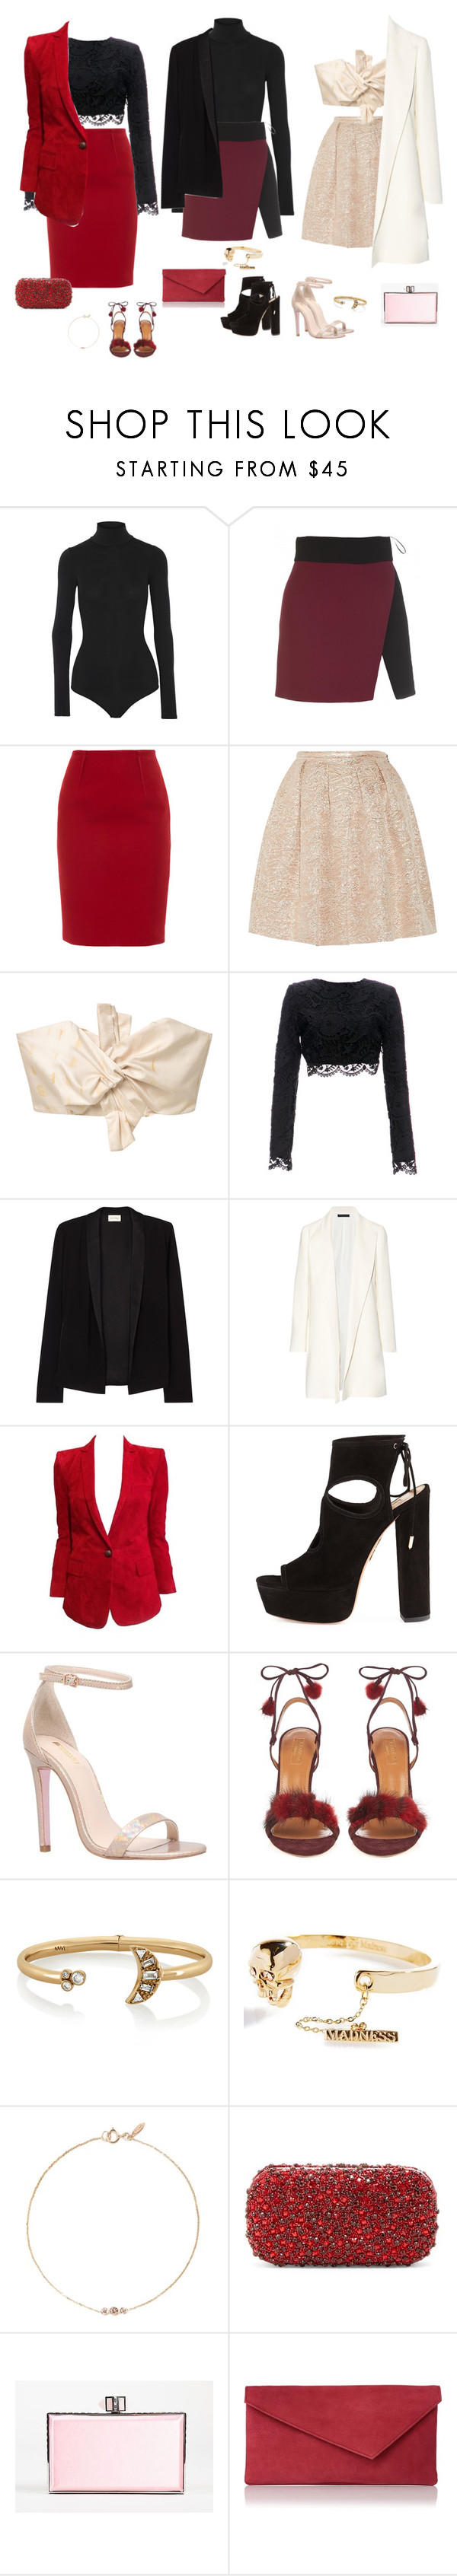 """""""All blazered up"""" by audrey-balt on Polyvore featuring Theory, FAUSTO PUGLISI, Paule Ka, Rochas, MANGO, Stone_Cold_Fox, American Vintage, The Row, Balmain and Aquazzura"""